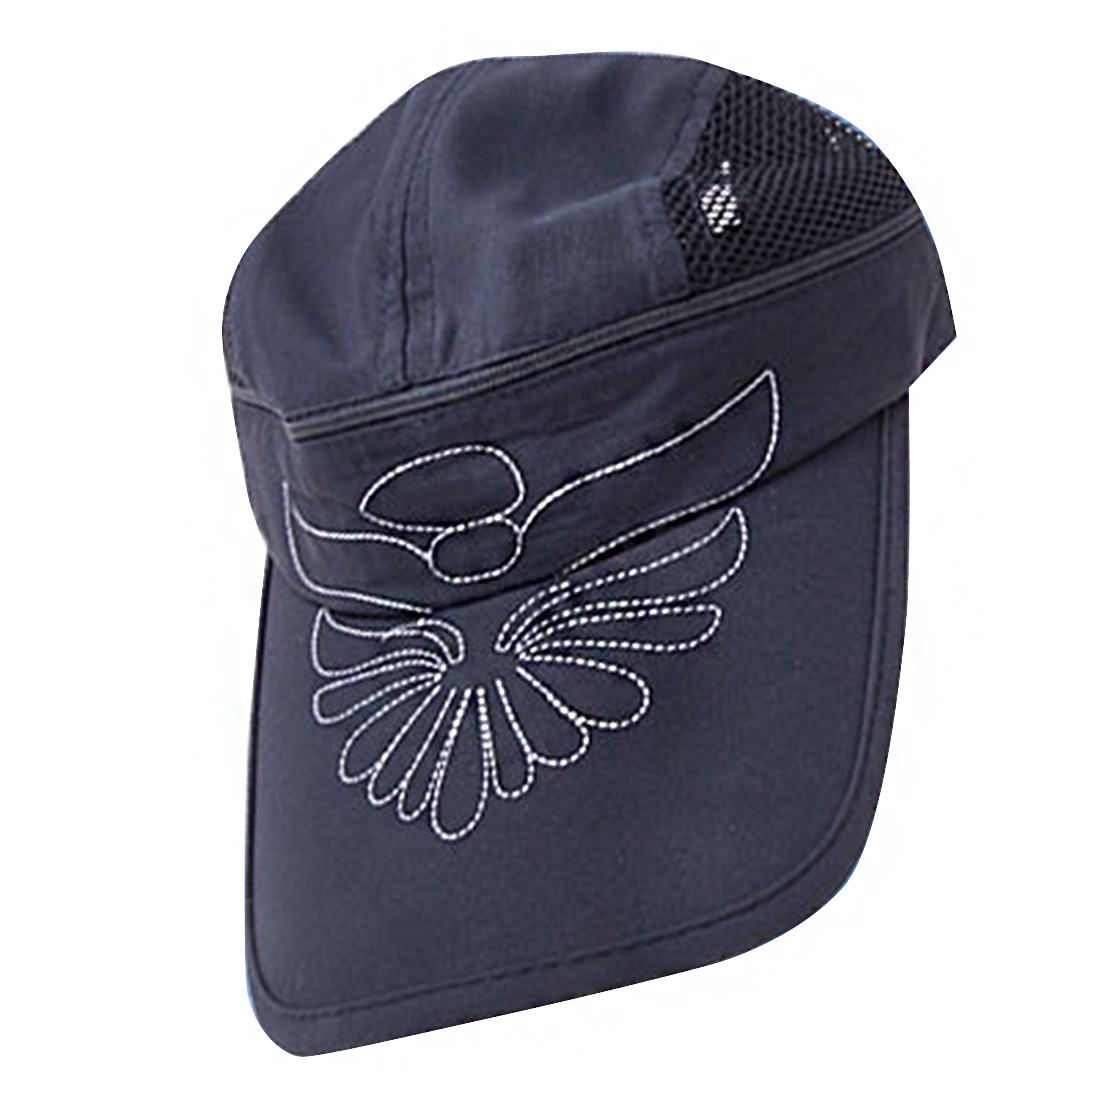 New Flower Baseball Mesh Trucker Hat Sun Visor Cap Blue